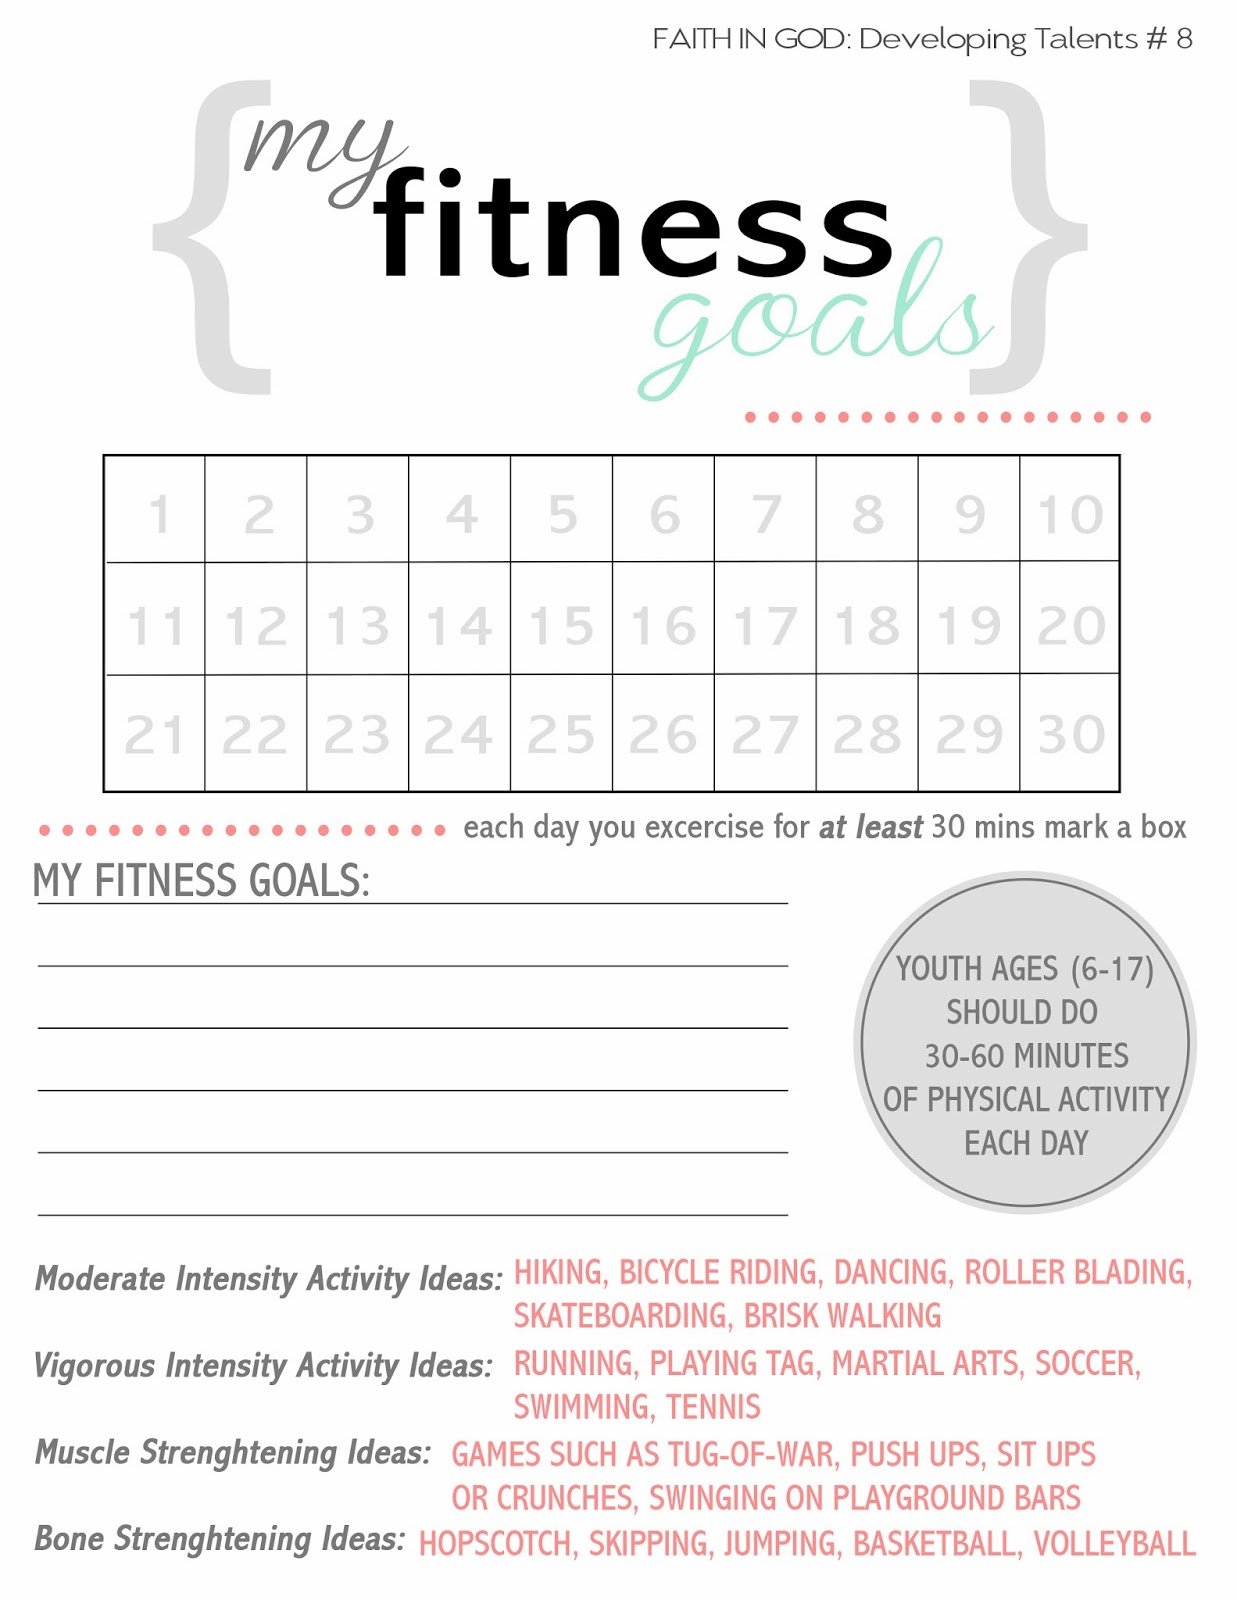 Worksheets Fitness Goals Worksheet the hill family activity days fitness fitness